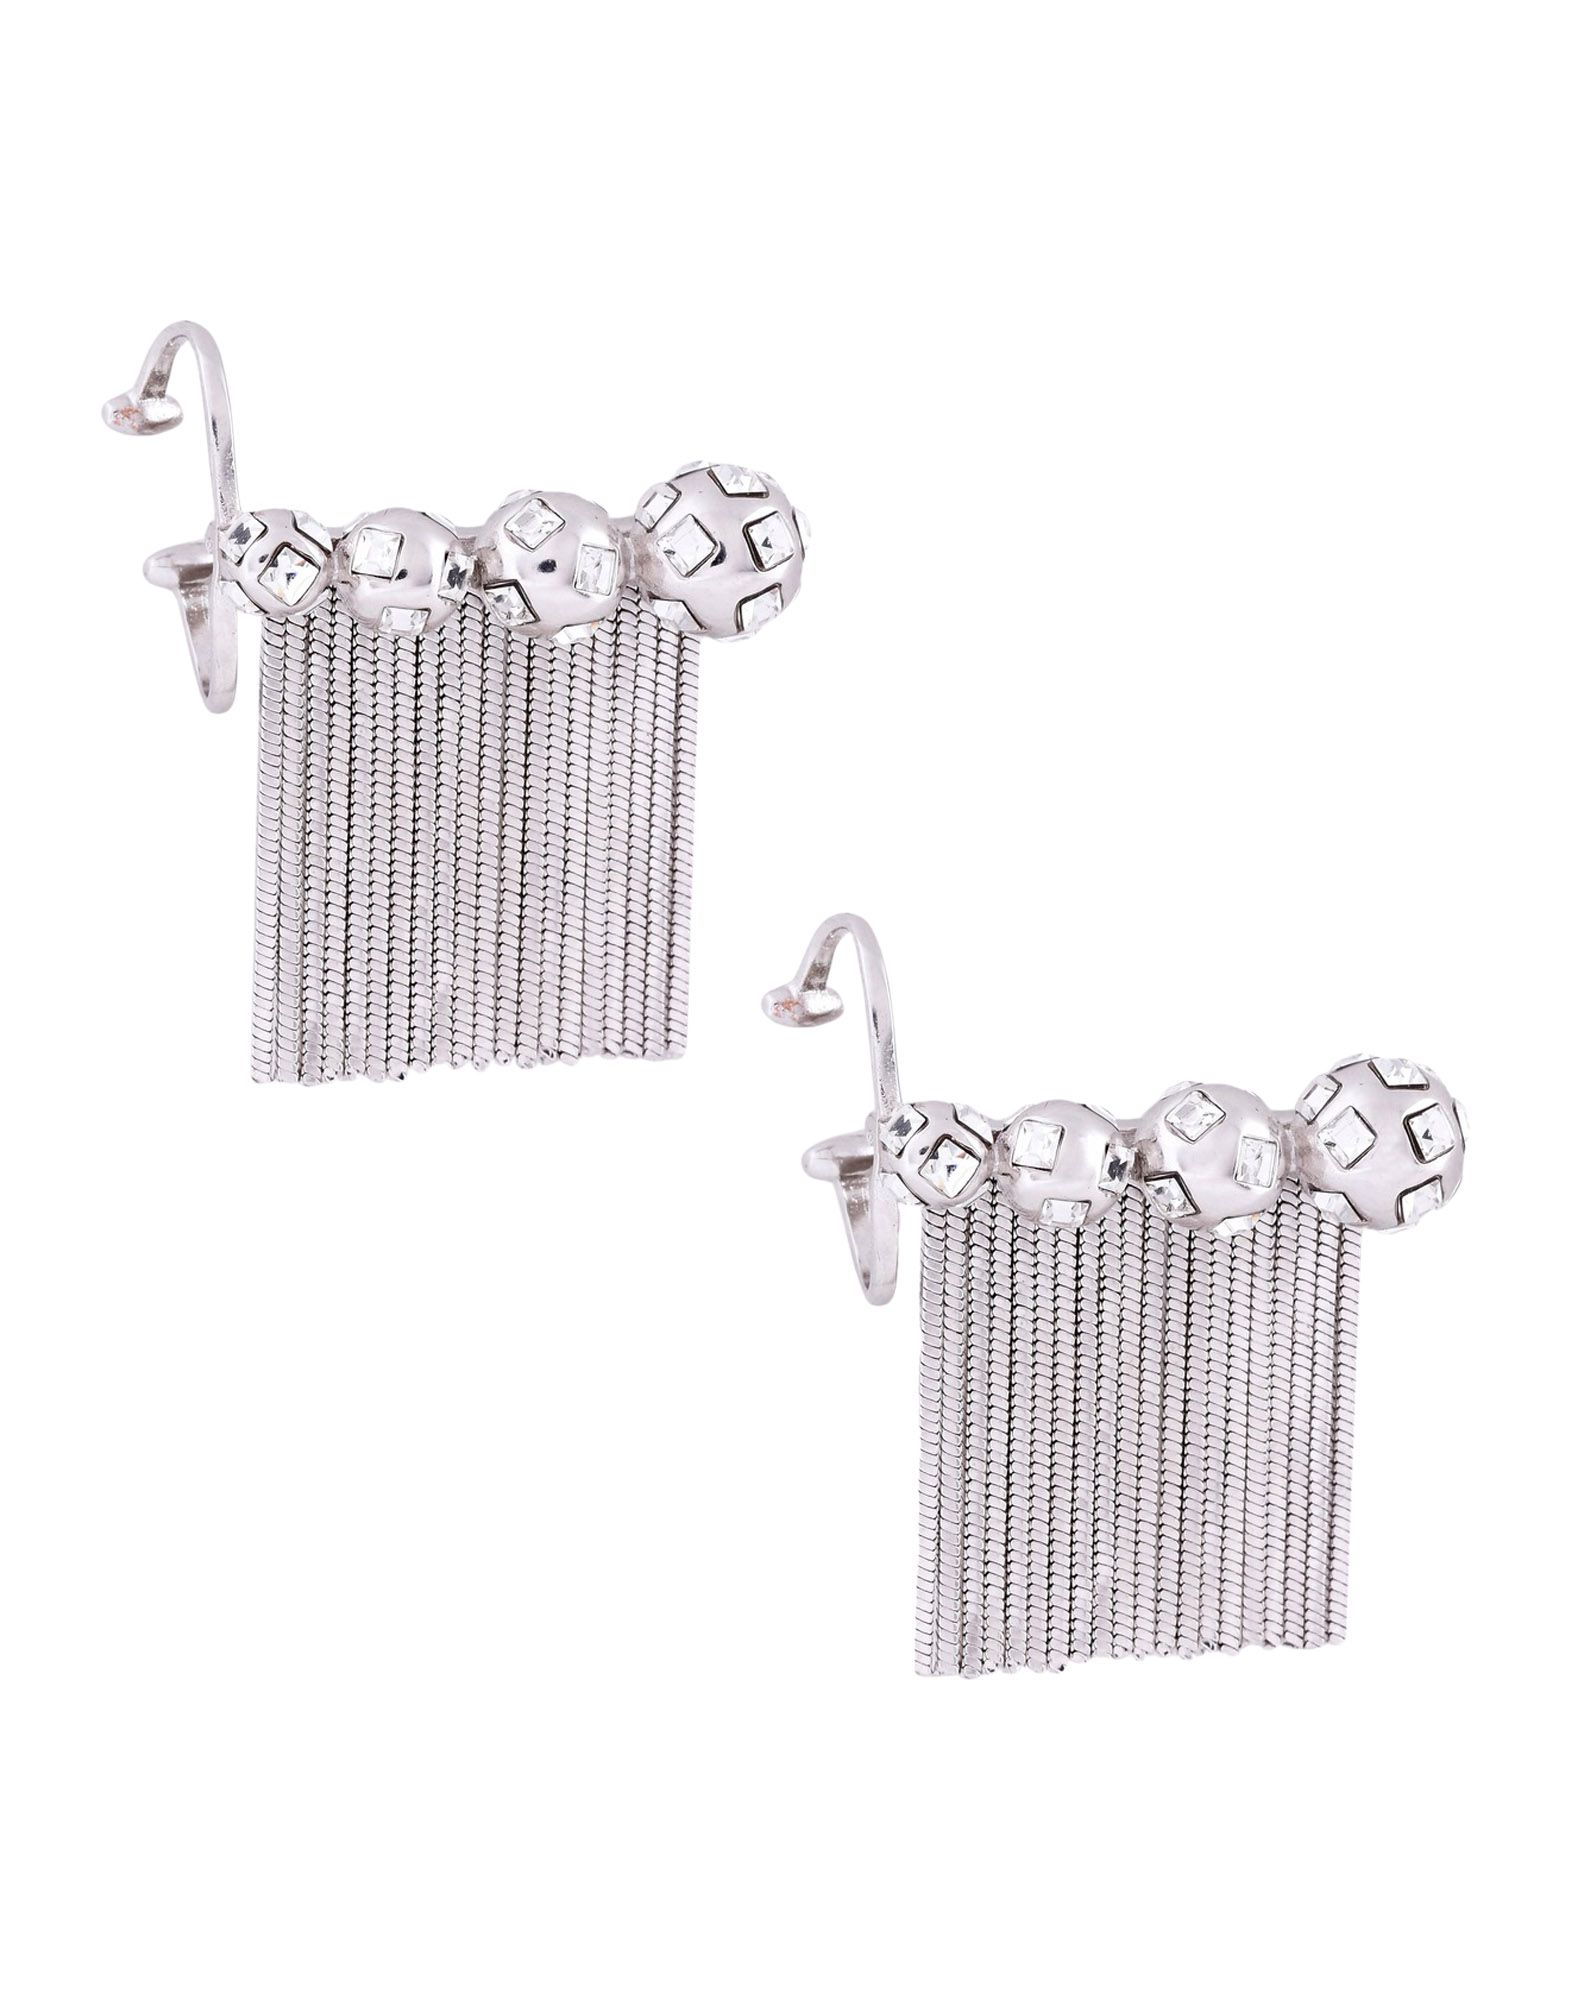 CA&LOU Earrings in Silver